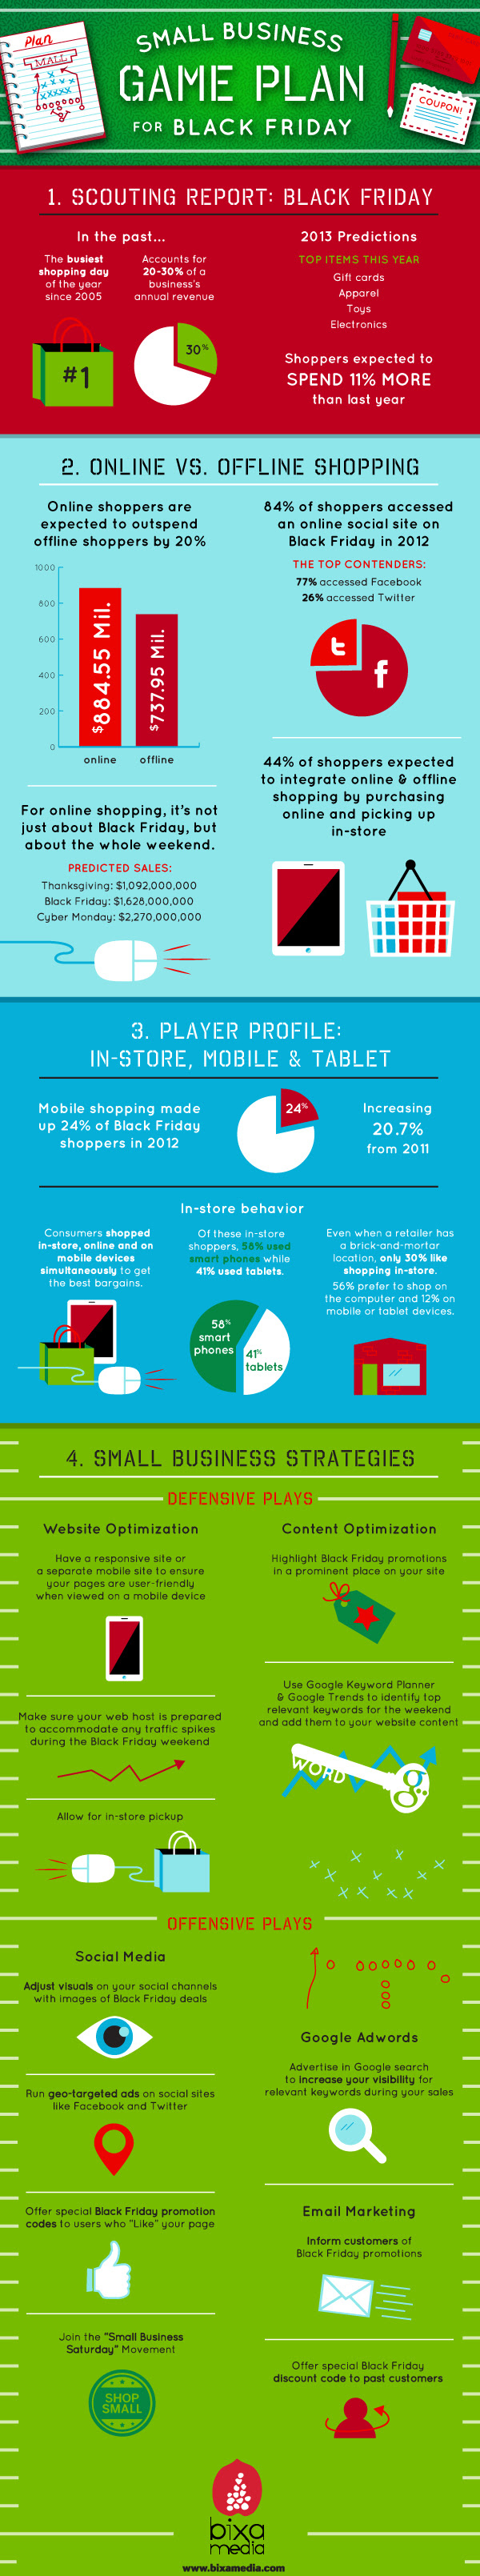 Infographic: Small Business Game Plan For Black Friday